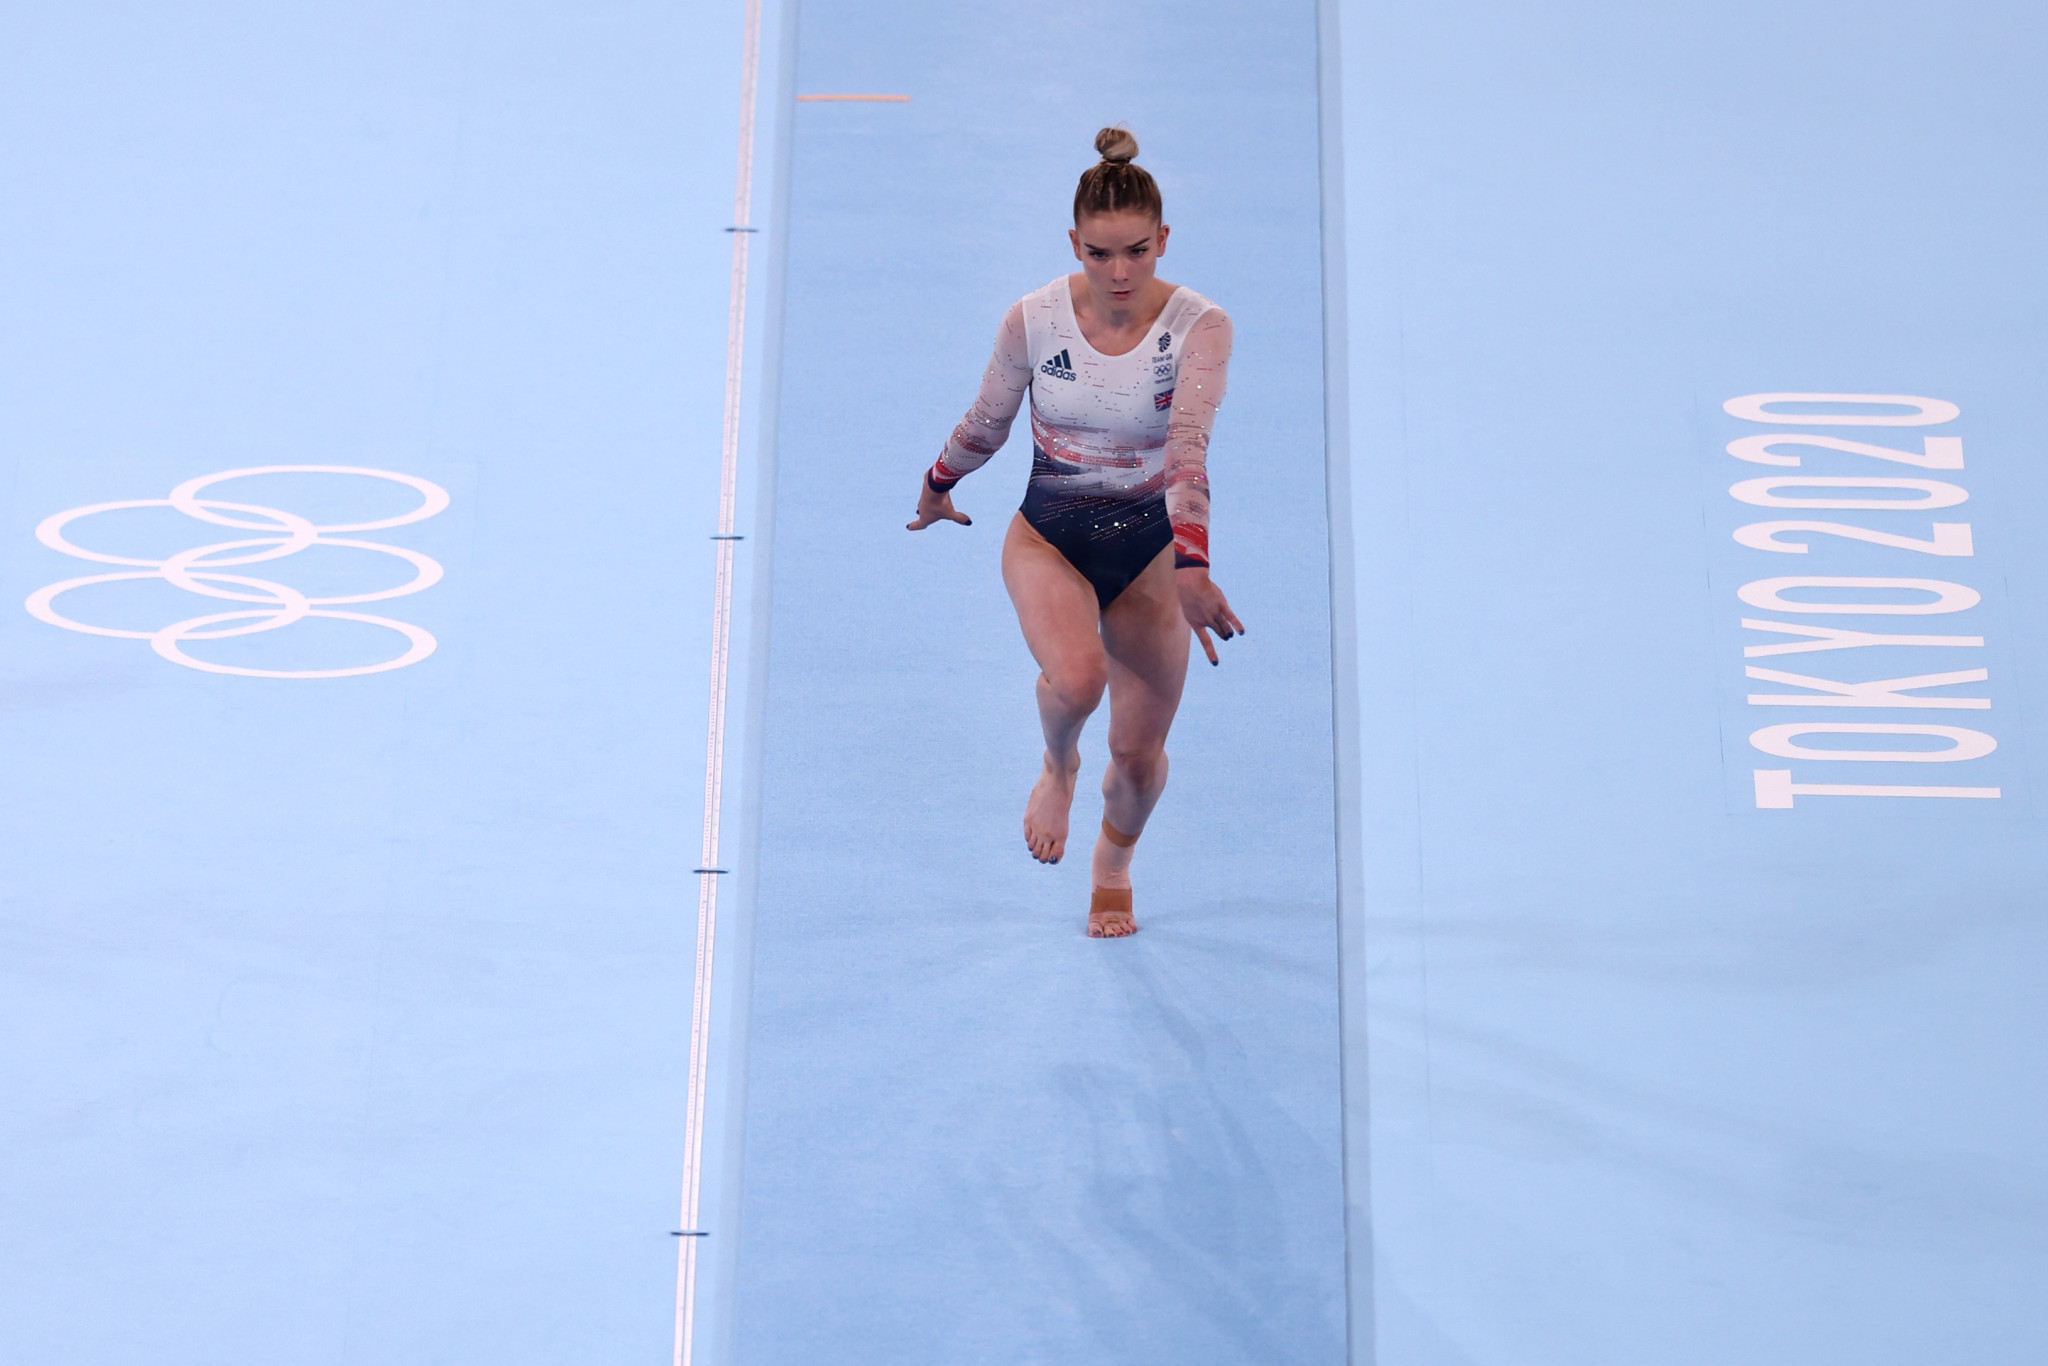 Alice Kinsella performed in front of empty stadiums at Tokyo 2020, but hopes for packed houses at Birmingham 2022 ©Getty Images